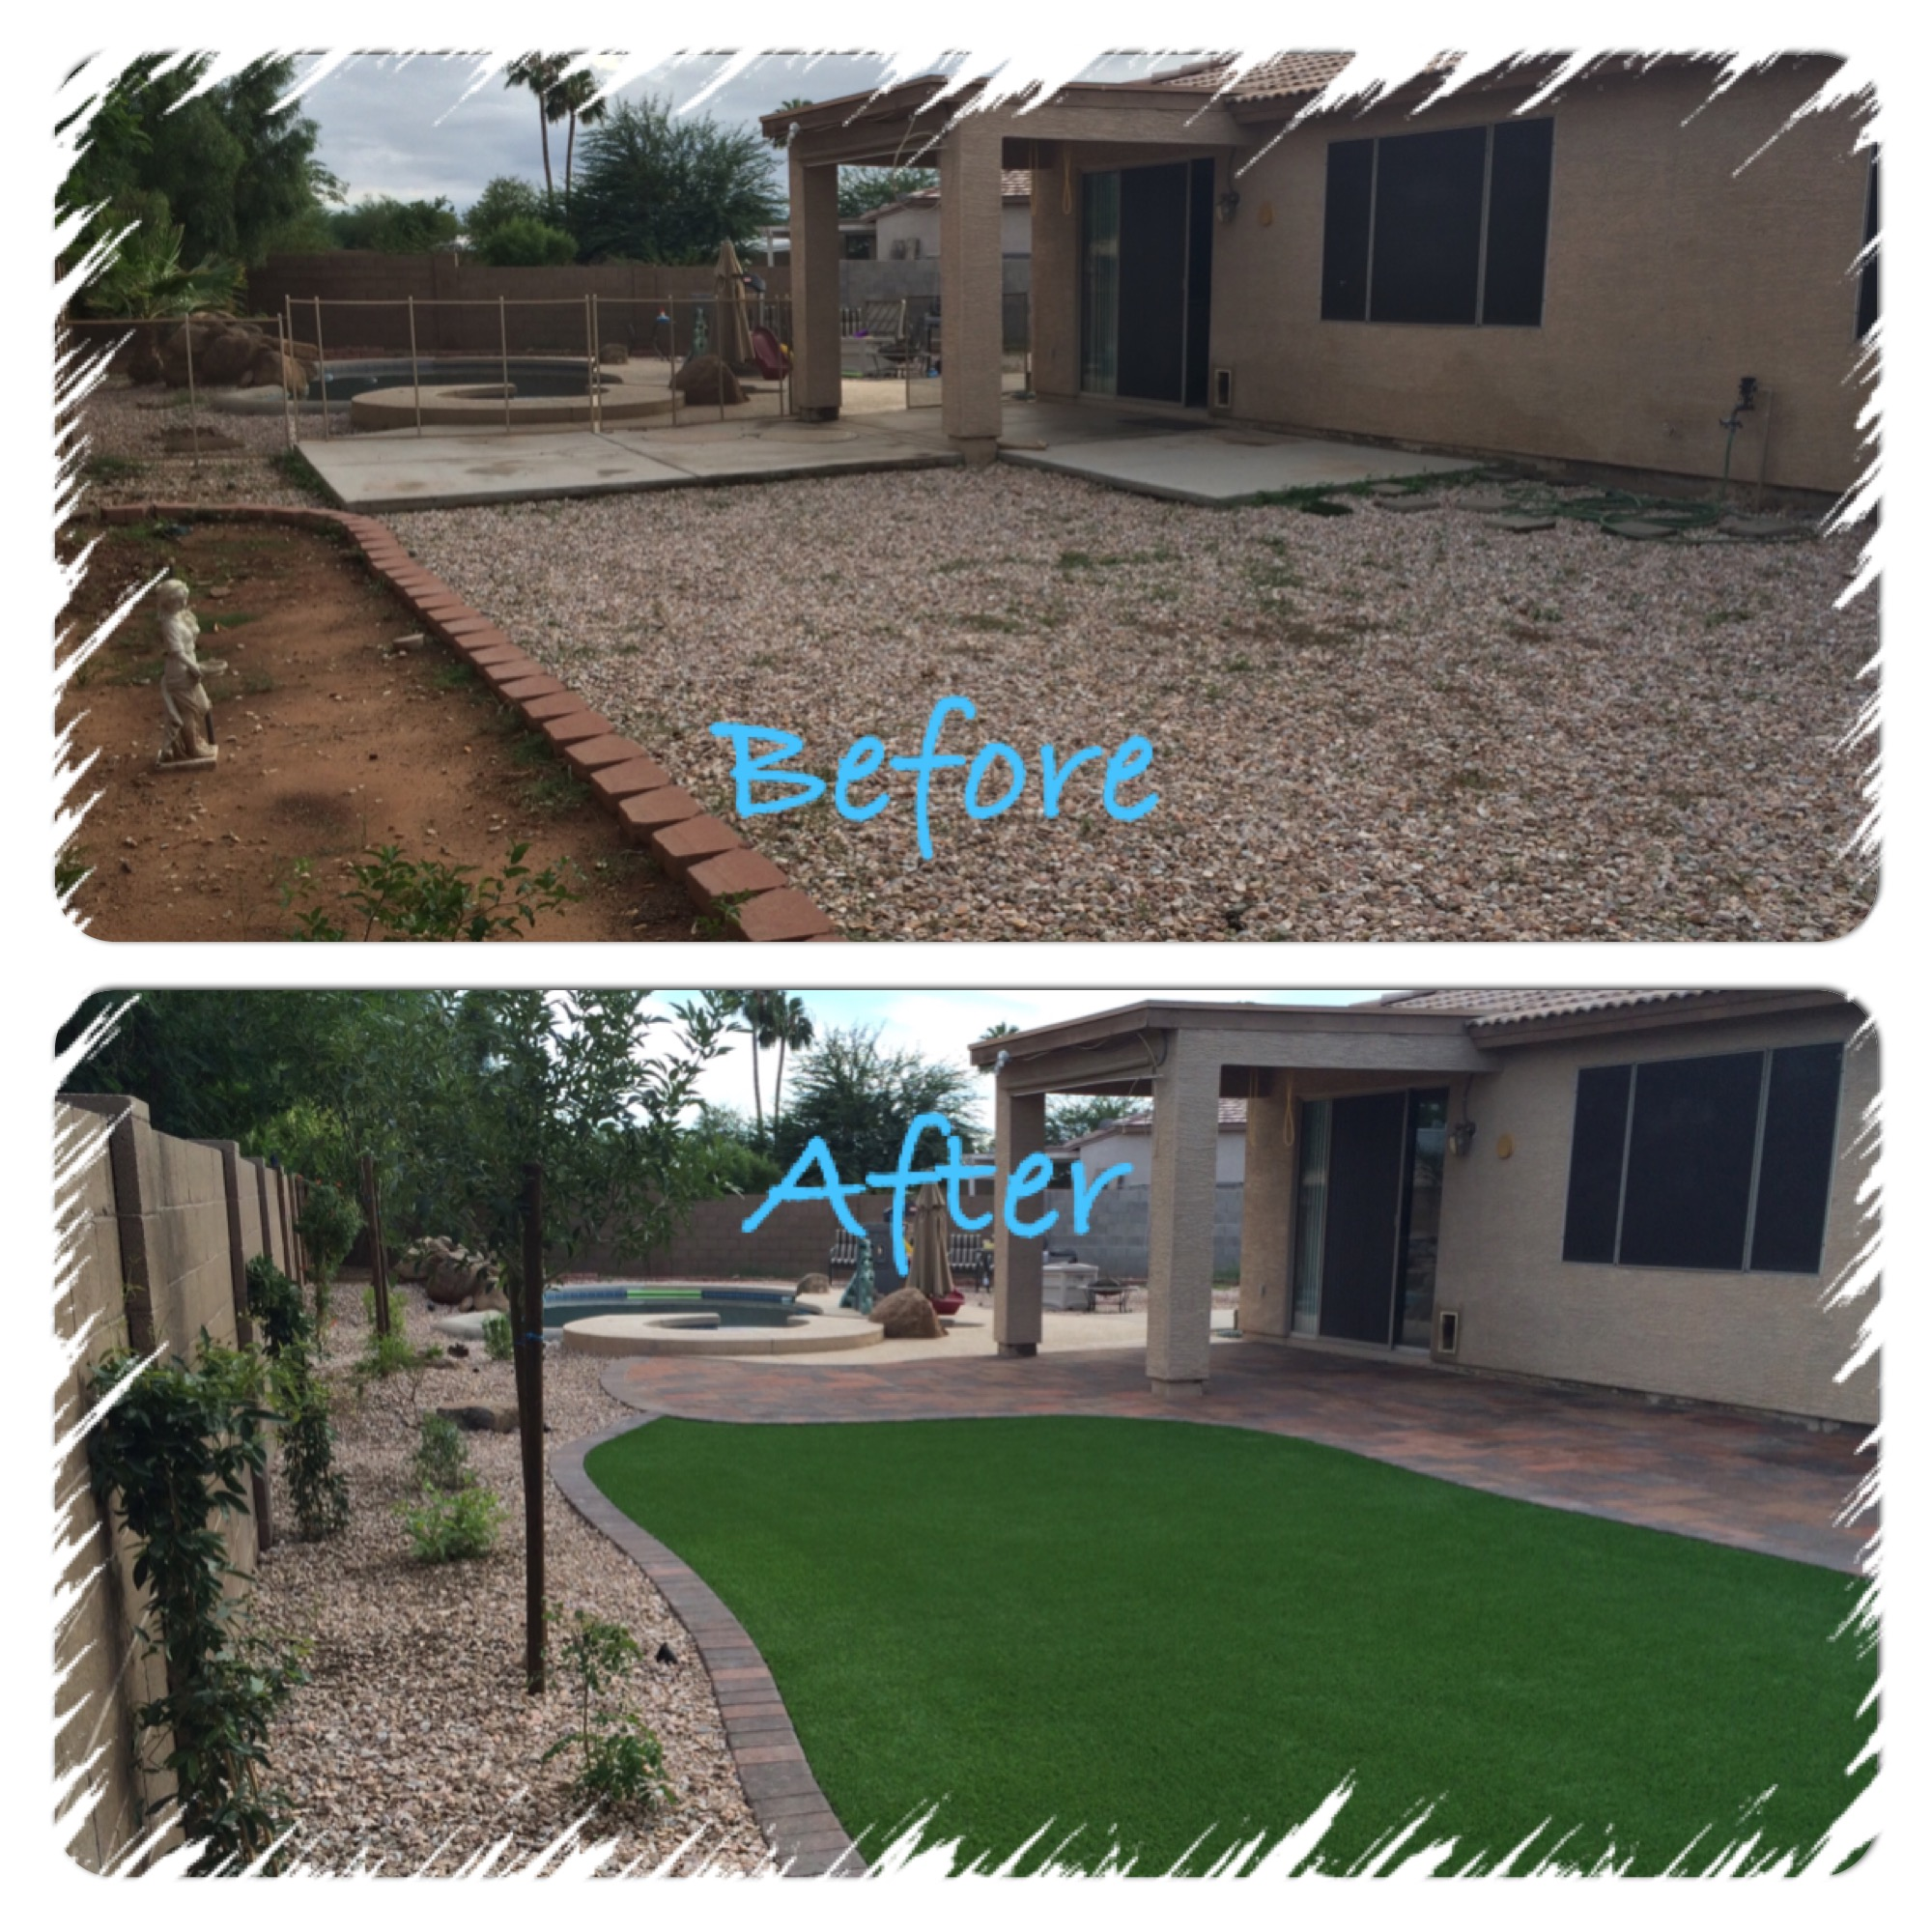 Patio designs archives arizona living landscape design for Backyard designs